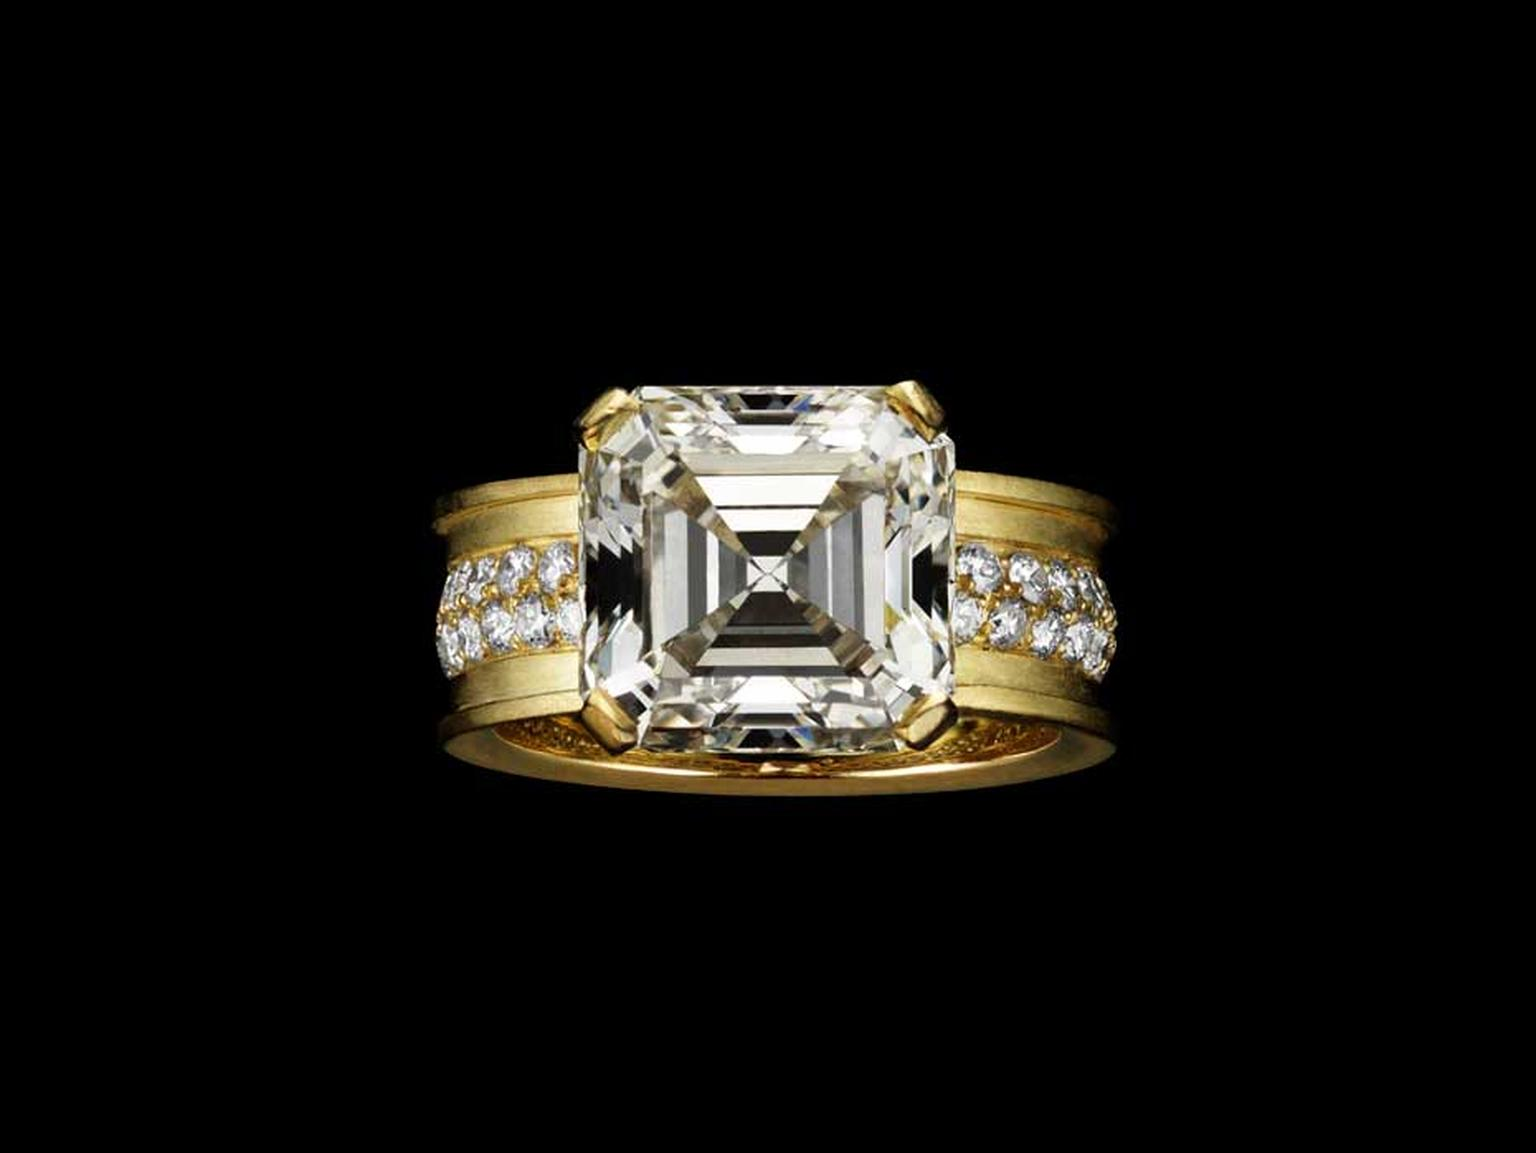 Liv Ballard Collection Sacro Vincolo Unchained gold ring, set with a 5.80ct Asscher-cut diamond.